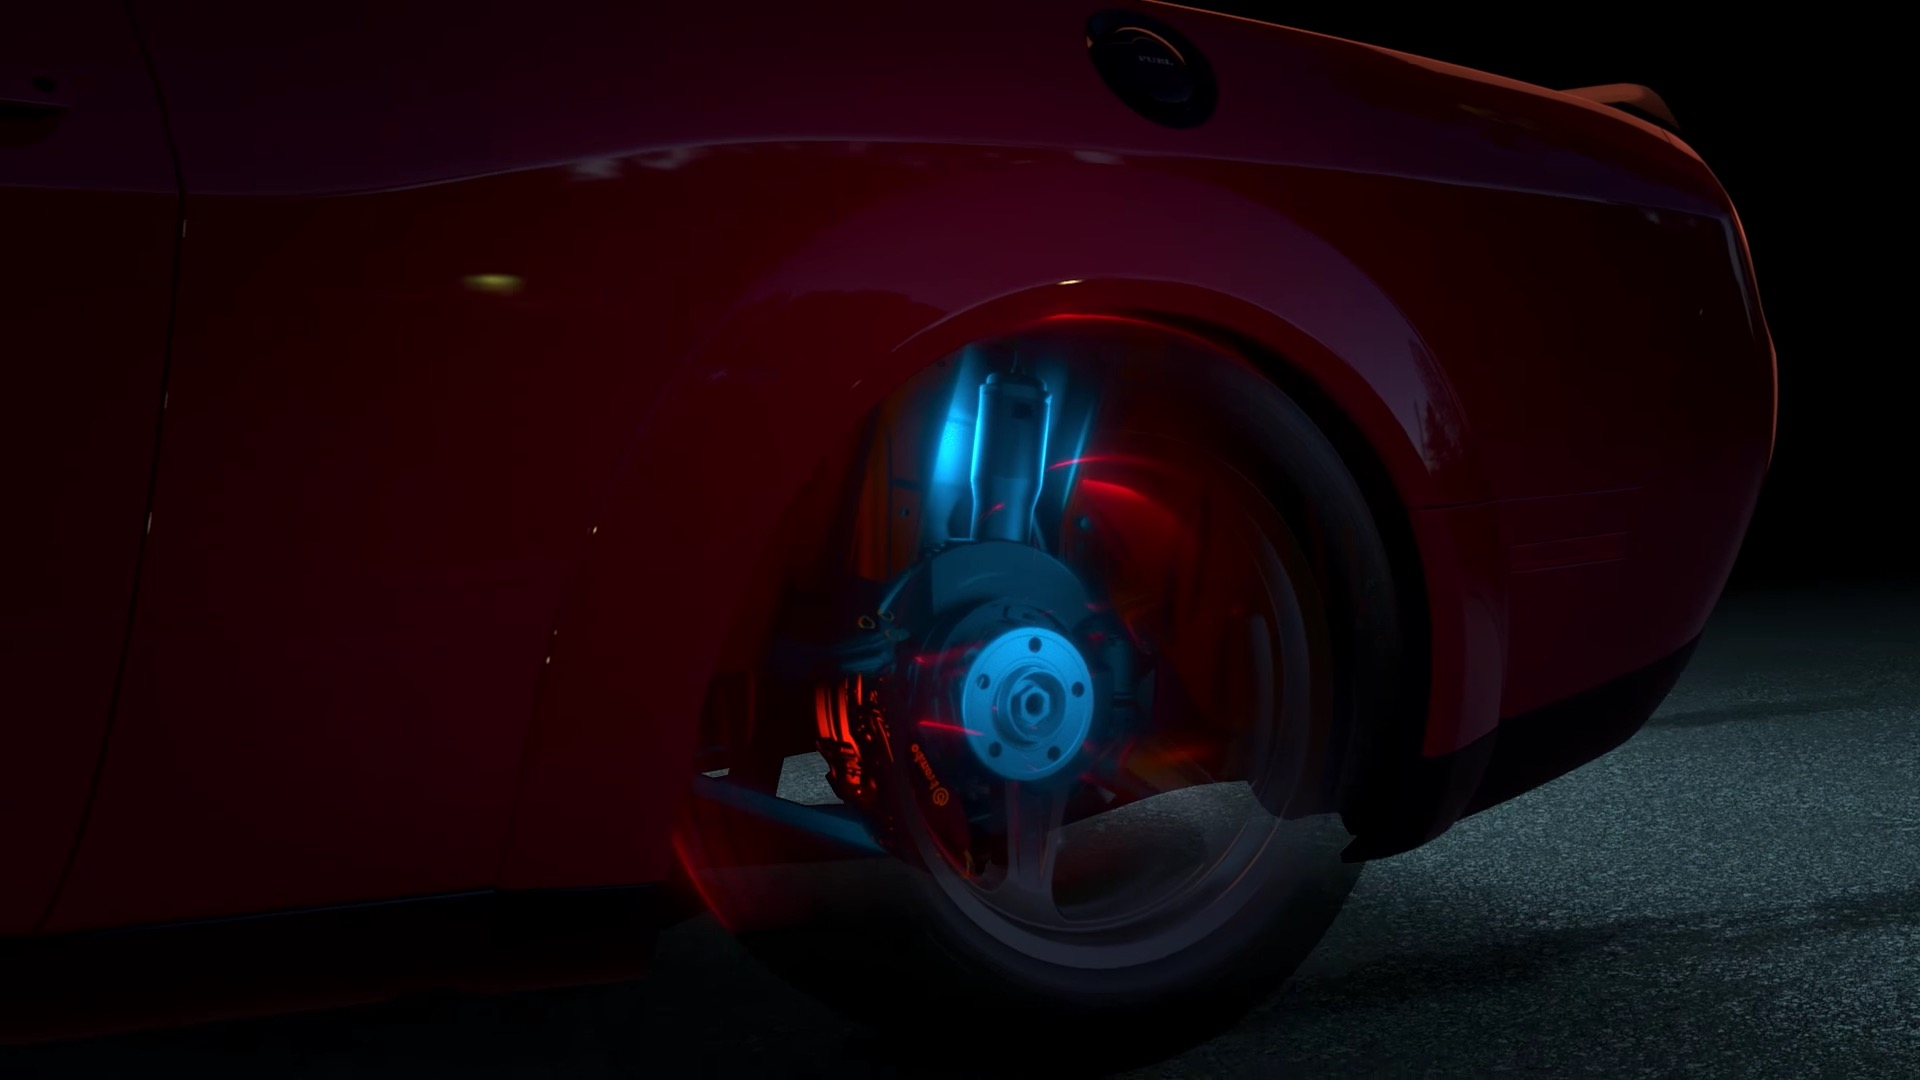 ... Dampers And Drag Mode Are Go For The 2018 Dodge Challenger SRT Demon